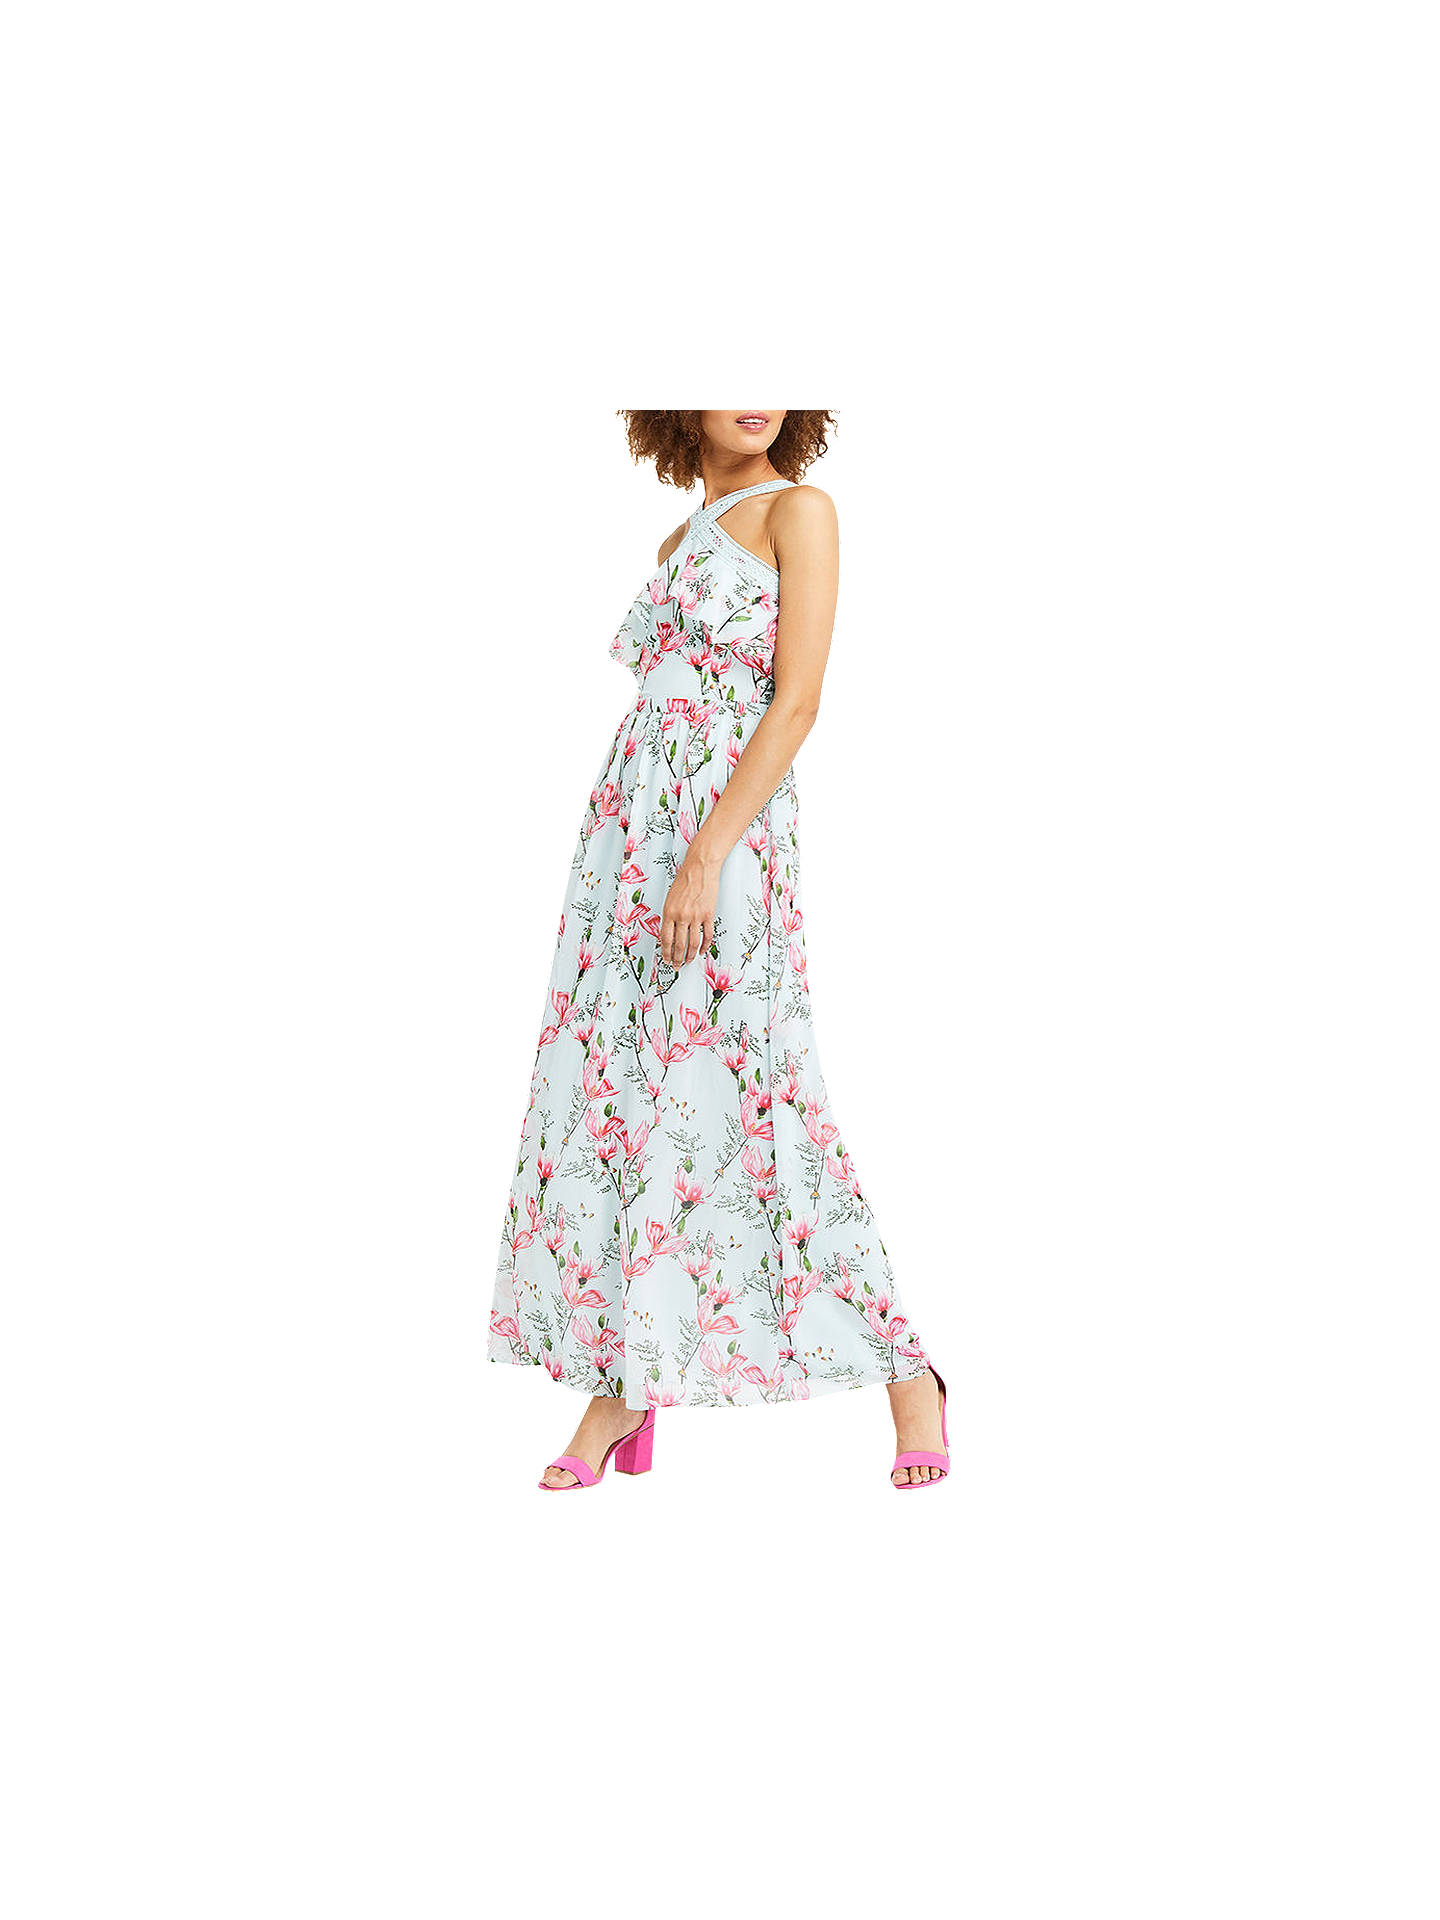 60ca8215c760 Buy Oasis Magnolia Chiffon Maxi Dress, Multi Blue, 6 Online at  johnlewis.com ...